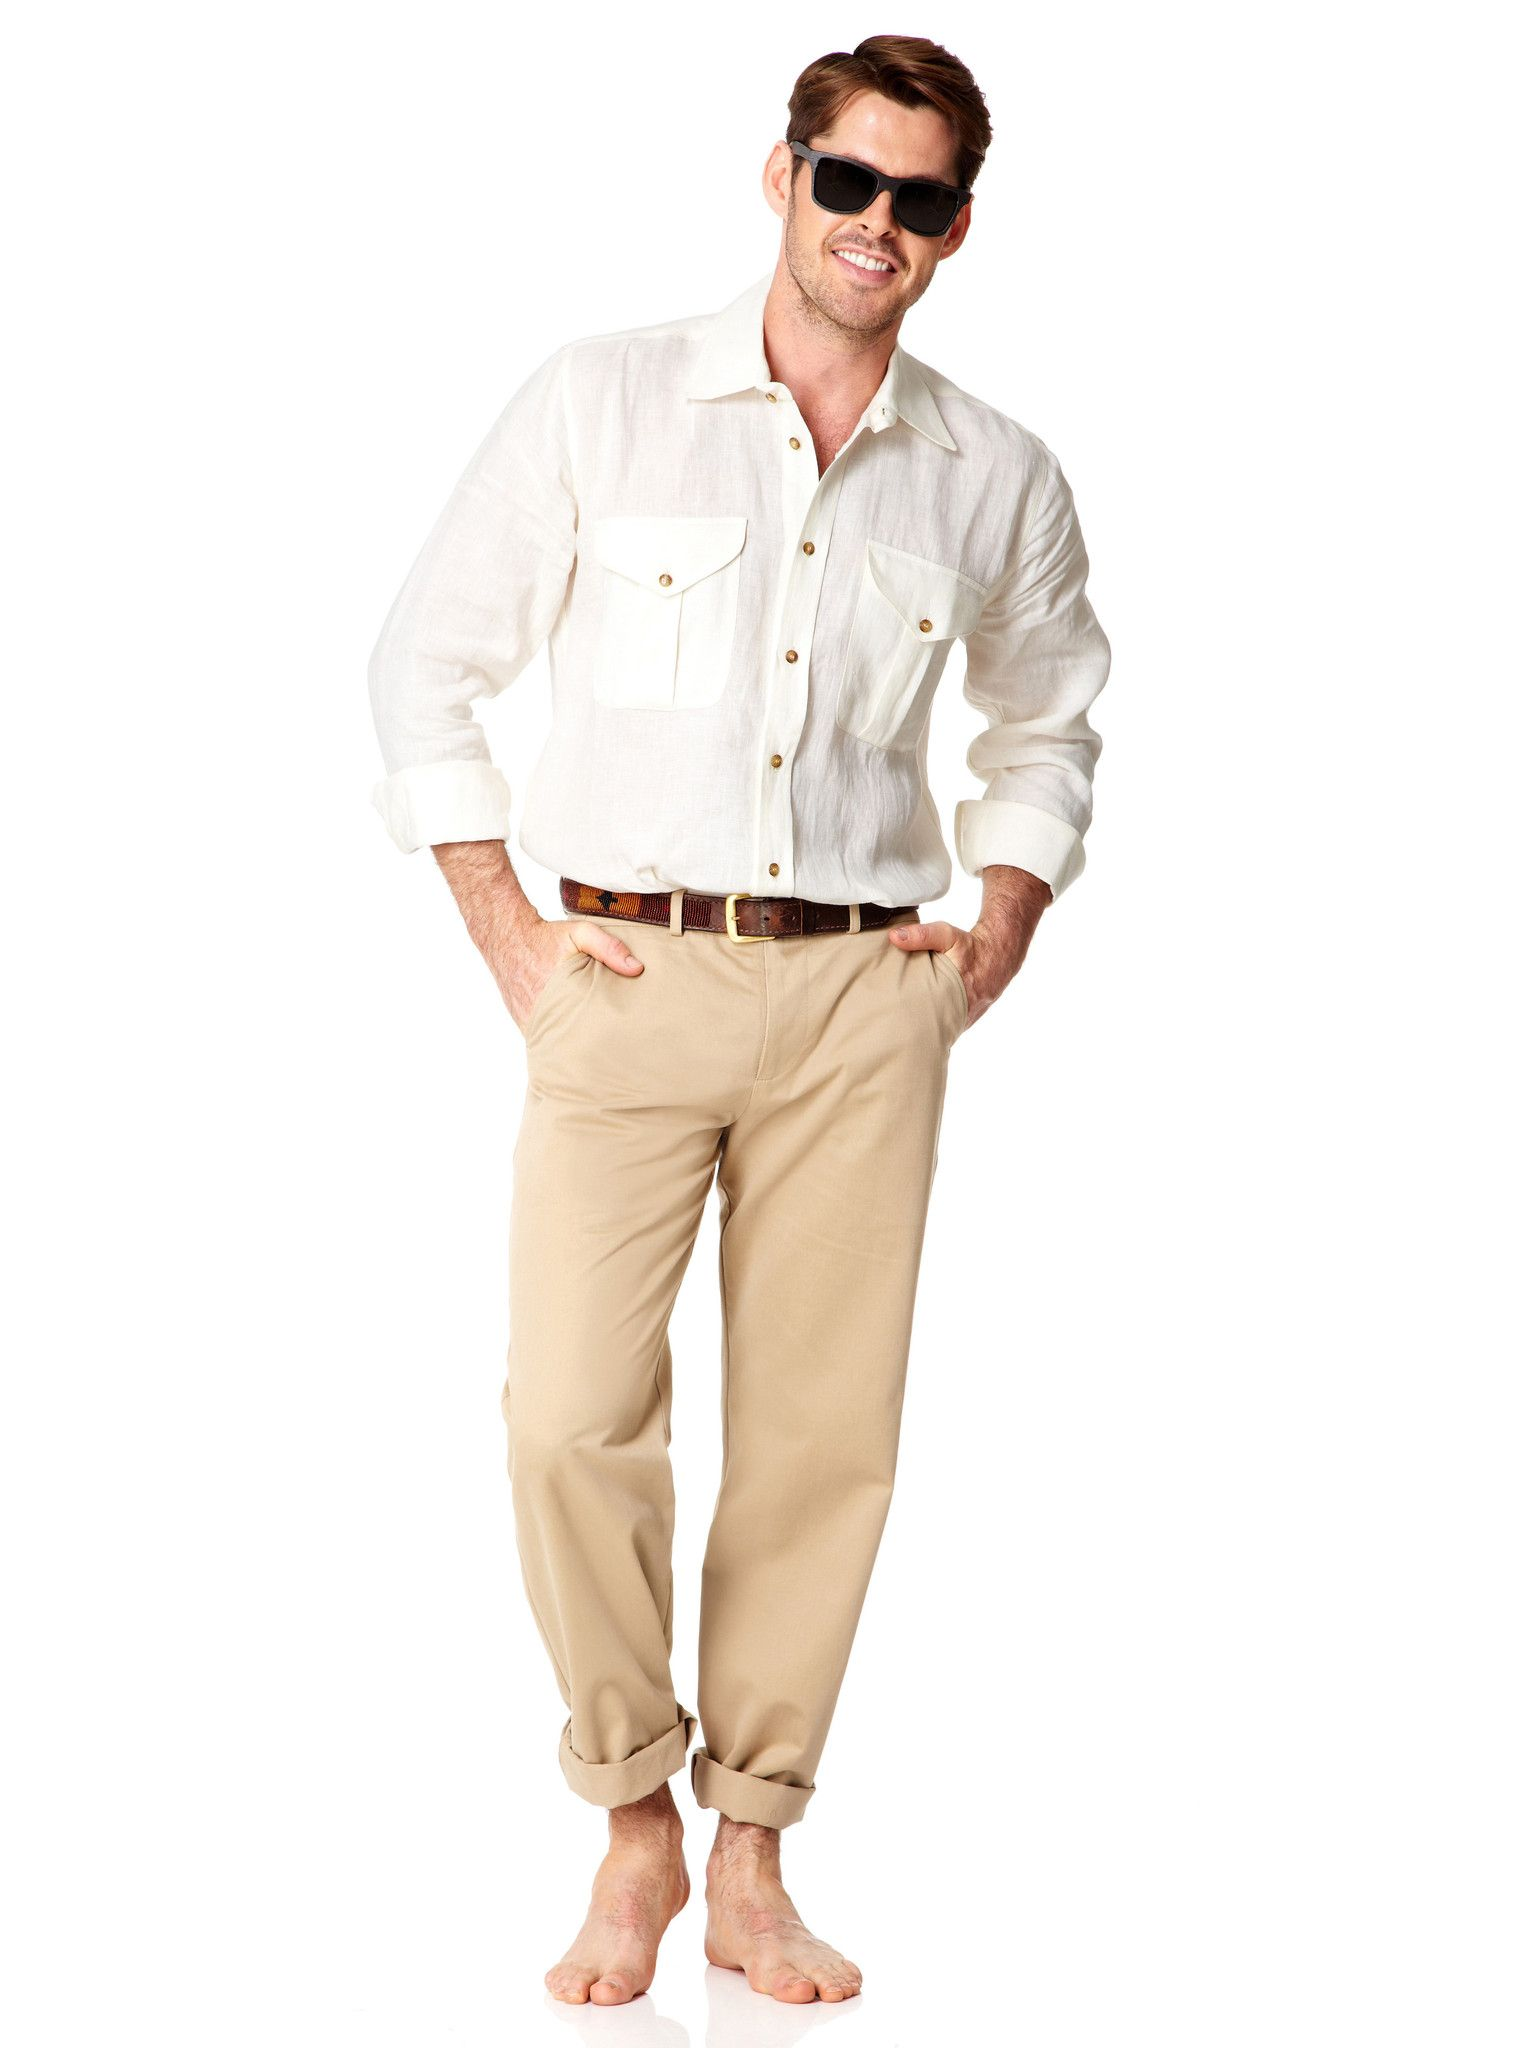 Cotton Safari Chinos http://geraldwebster.com/collections/mens-apparel/products/cotton-safari-chinos-khaki-1